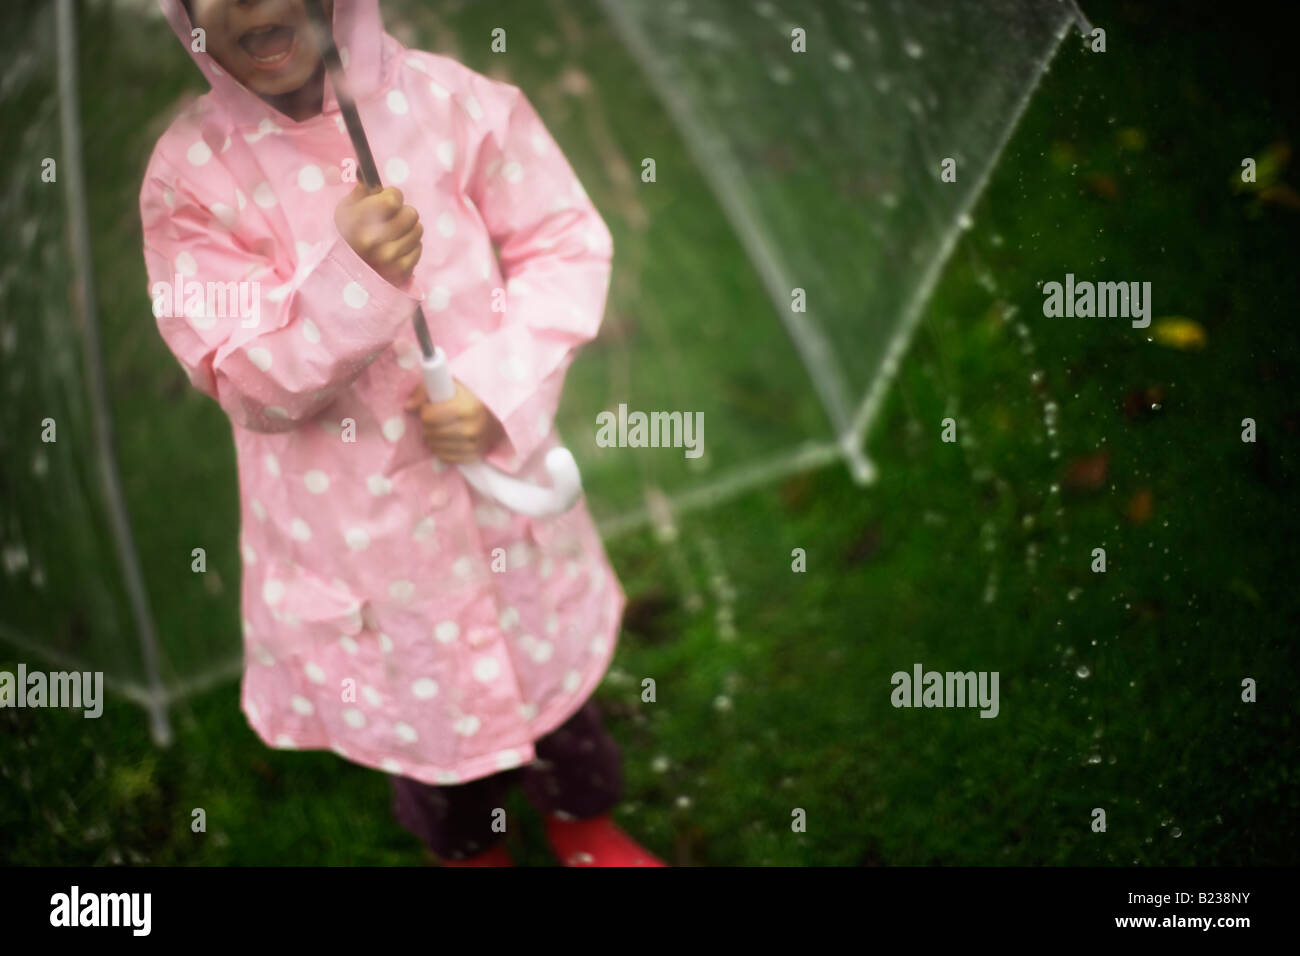 Five year old girl stands in garden with umbrella on a rainy day - Stock Image